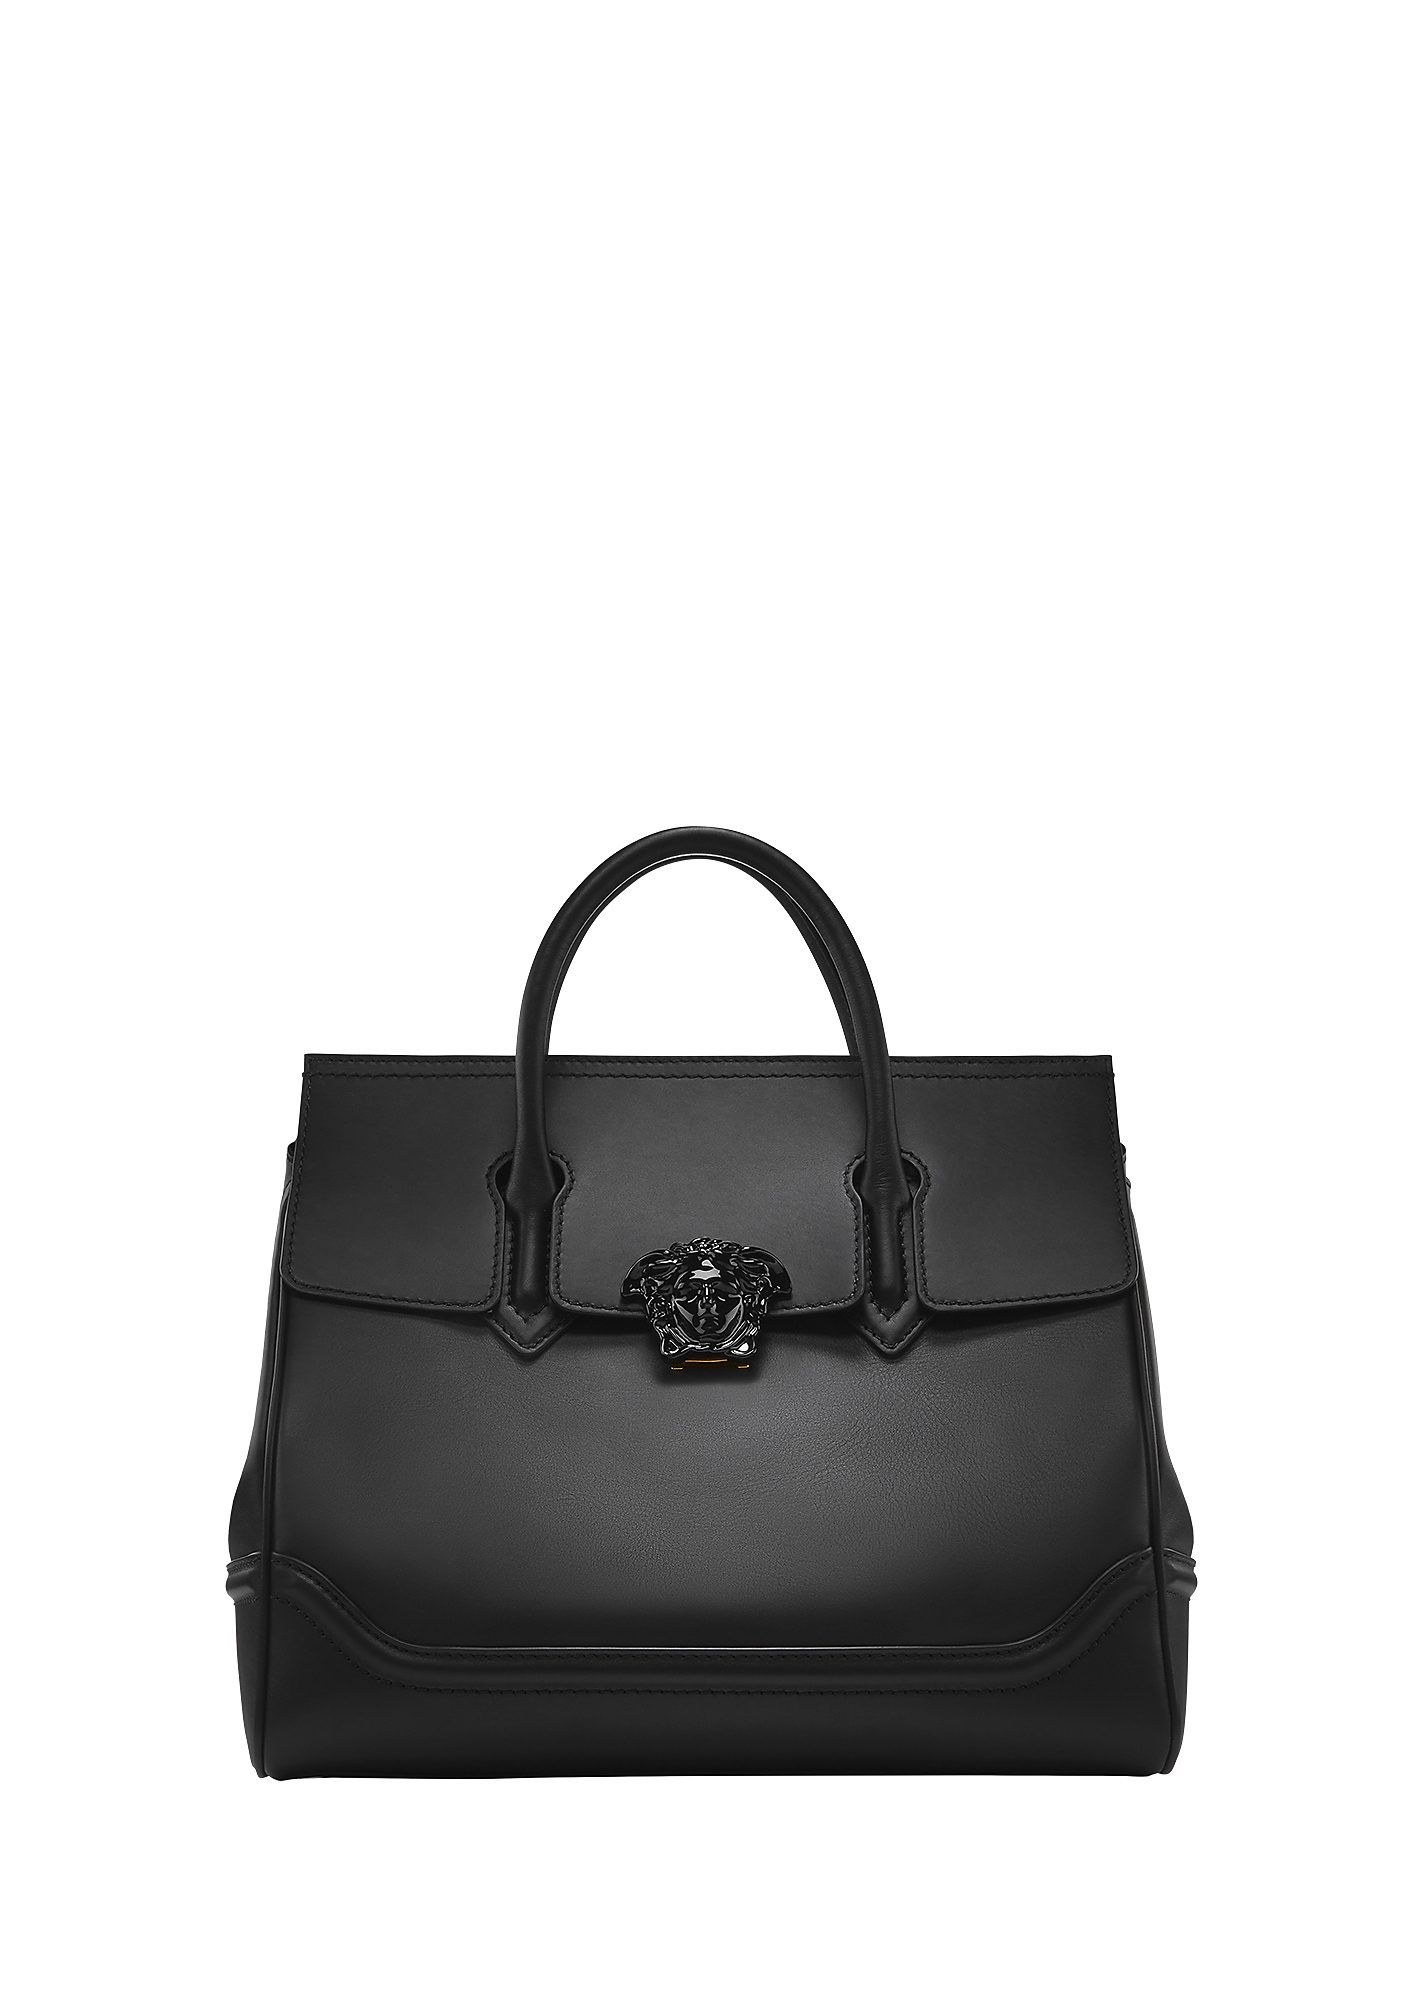 acf2c65a62b7 VERSACE Palazzo Empire Leather Bag.  versace  bags  shoulder bags  hand bags   leather  linen  lining